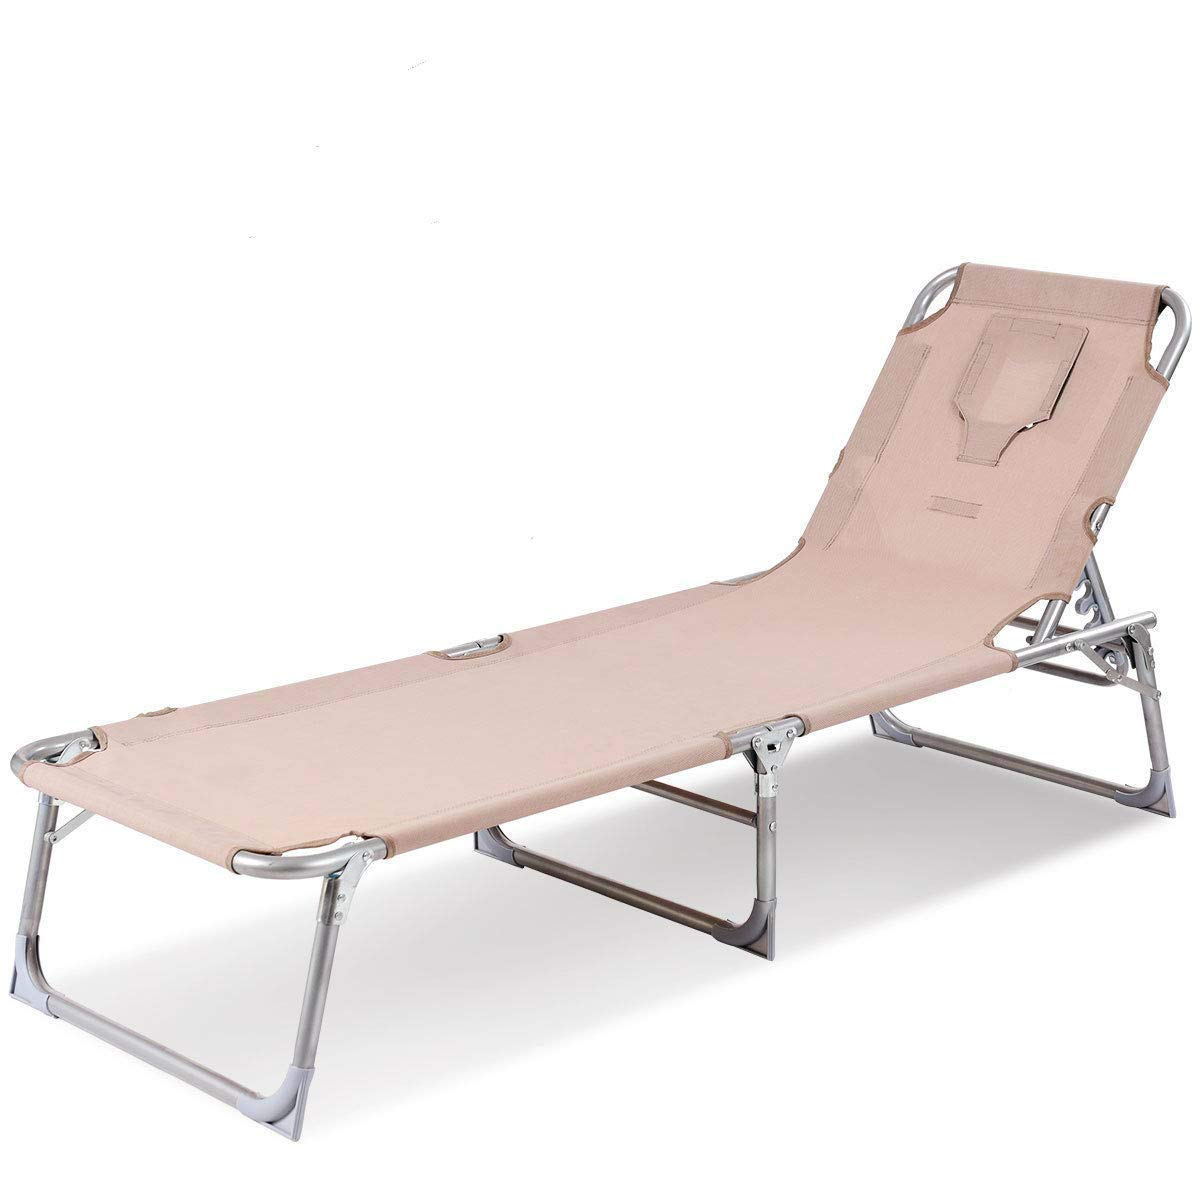 Goplus Folding Chaise Lounge Chair Reclining Adjustable Outdoor Patio Beach Camping Recliner w/Hole for Face Pool Yard (Apricot)